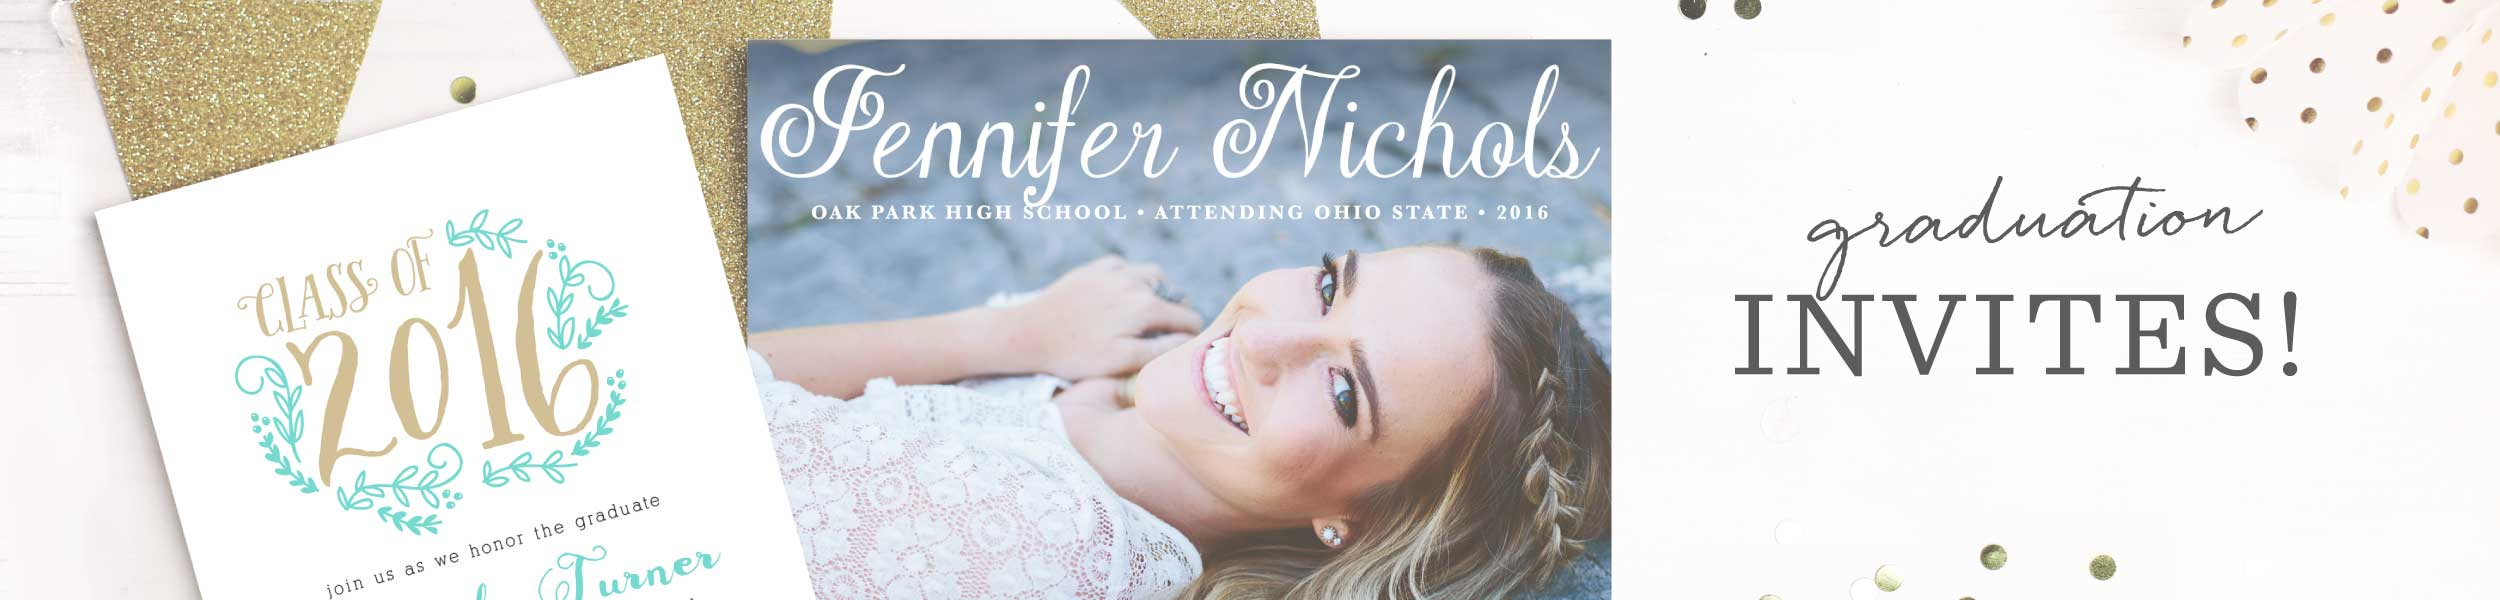 2018 graduation announcements invitations for high school and college graduation filmwisefo